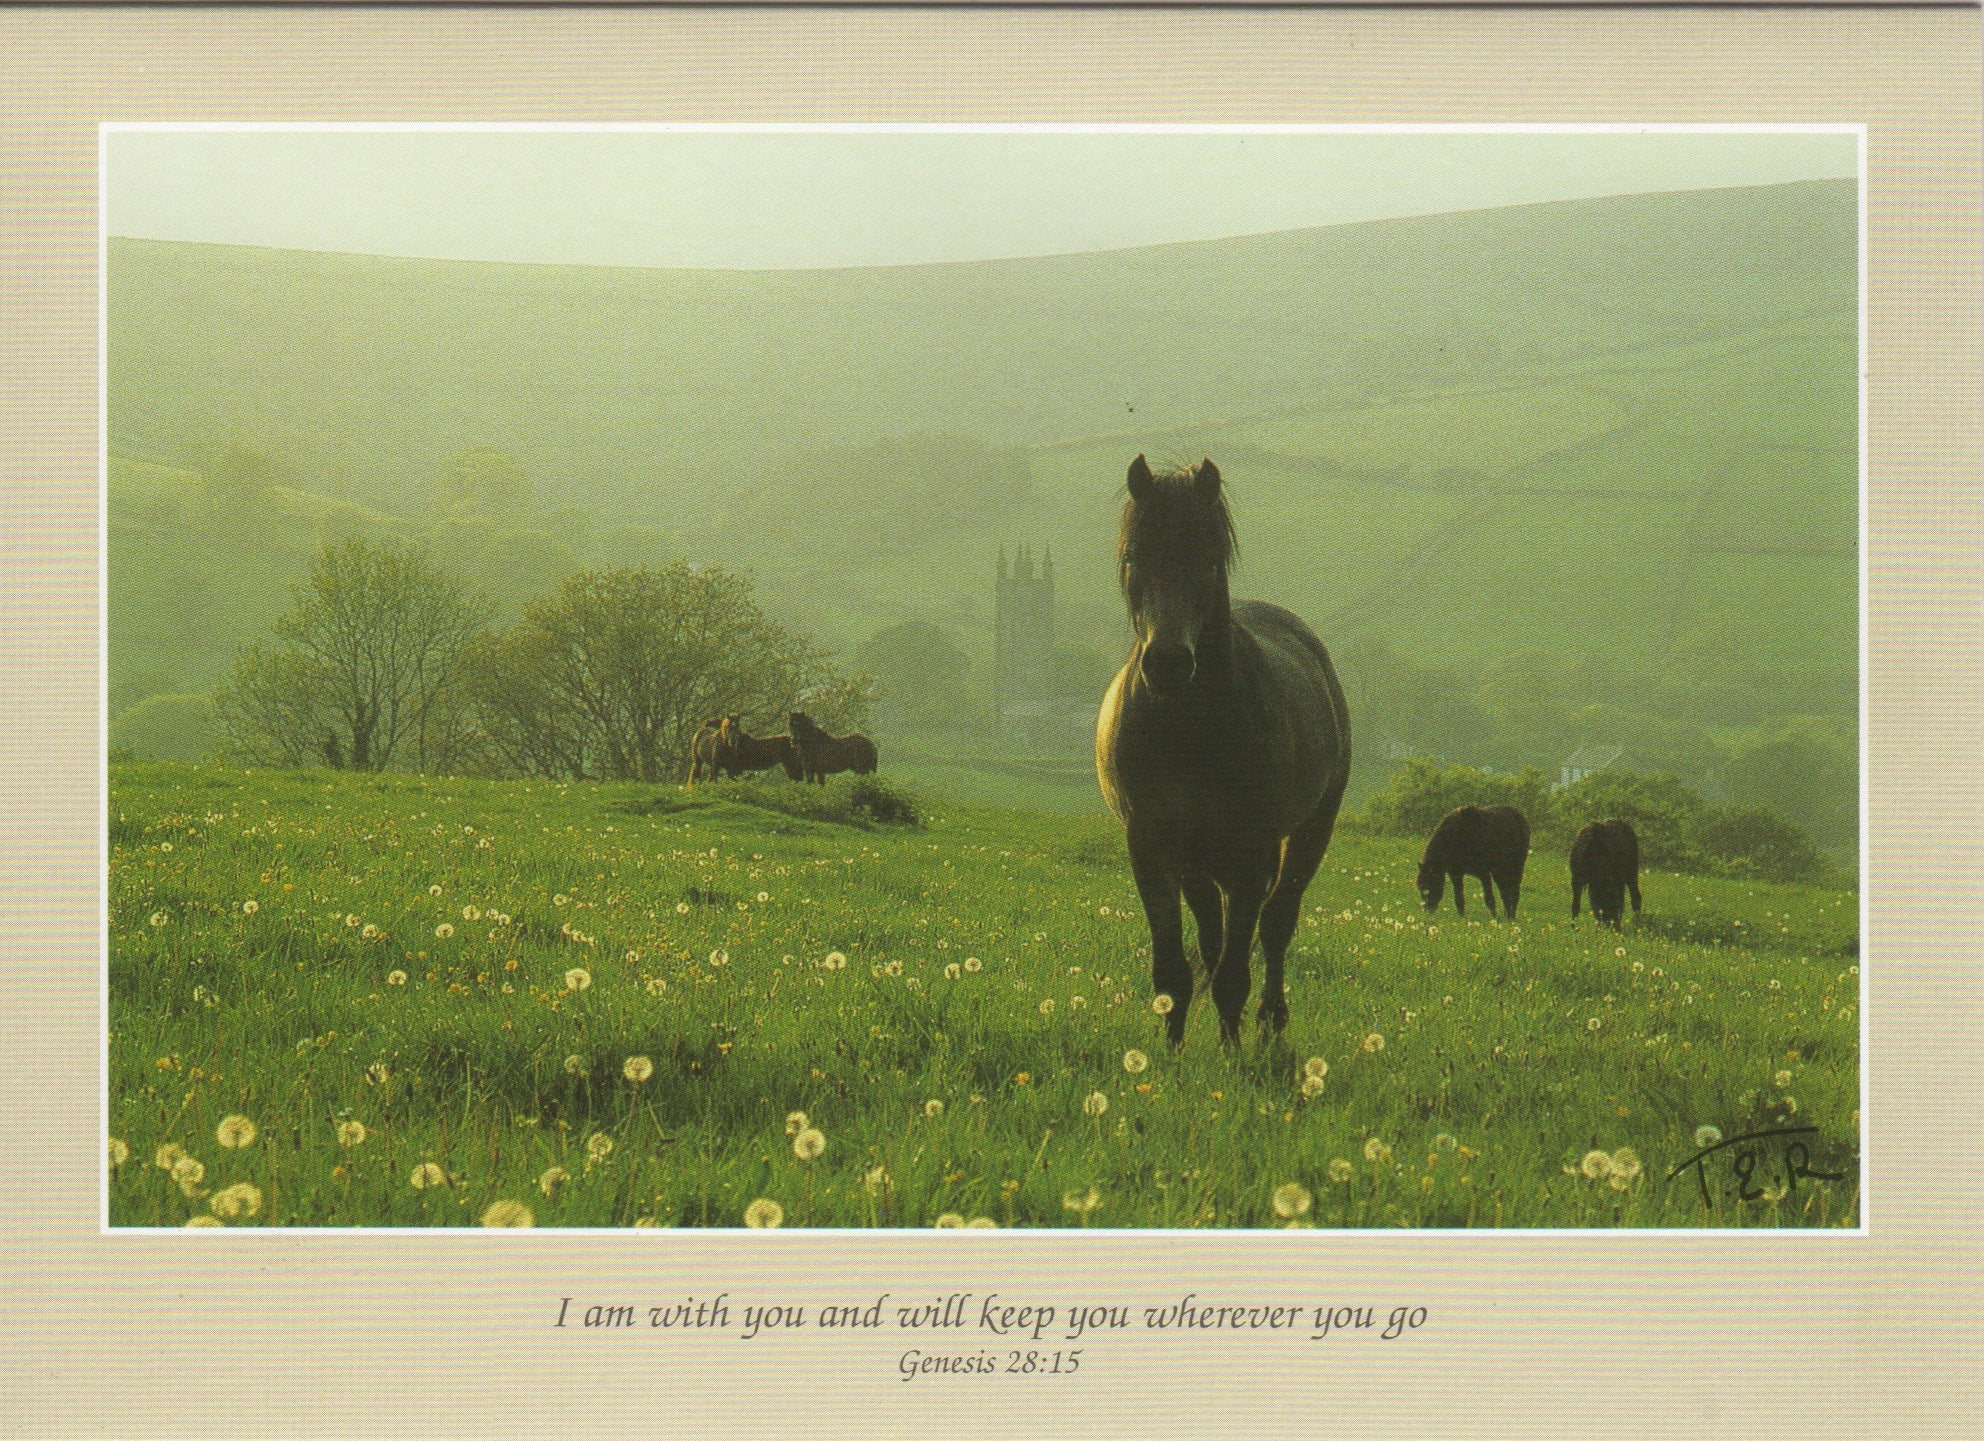 S030 - Dartmoor And Dandelions - Scripture Card - Rectangle